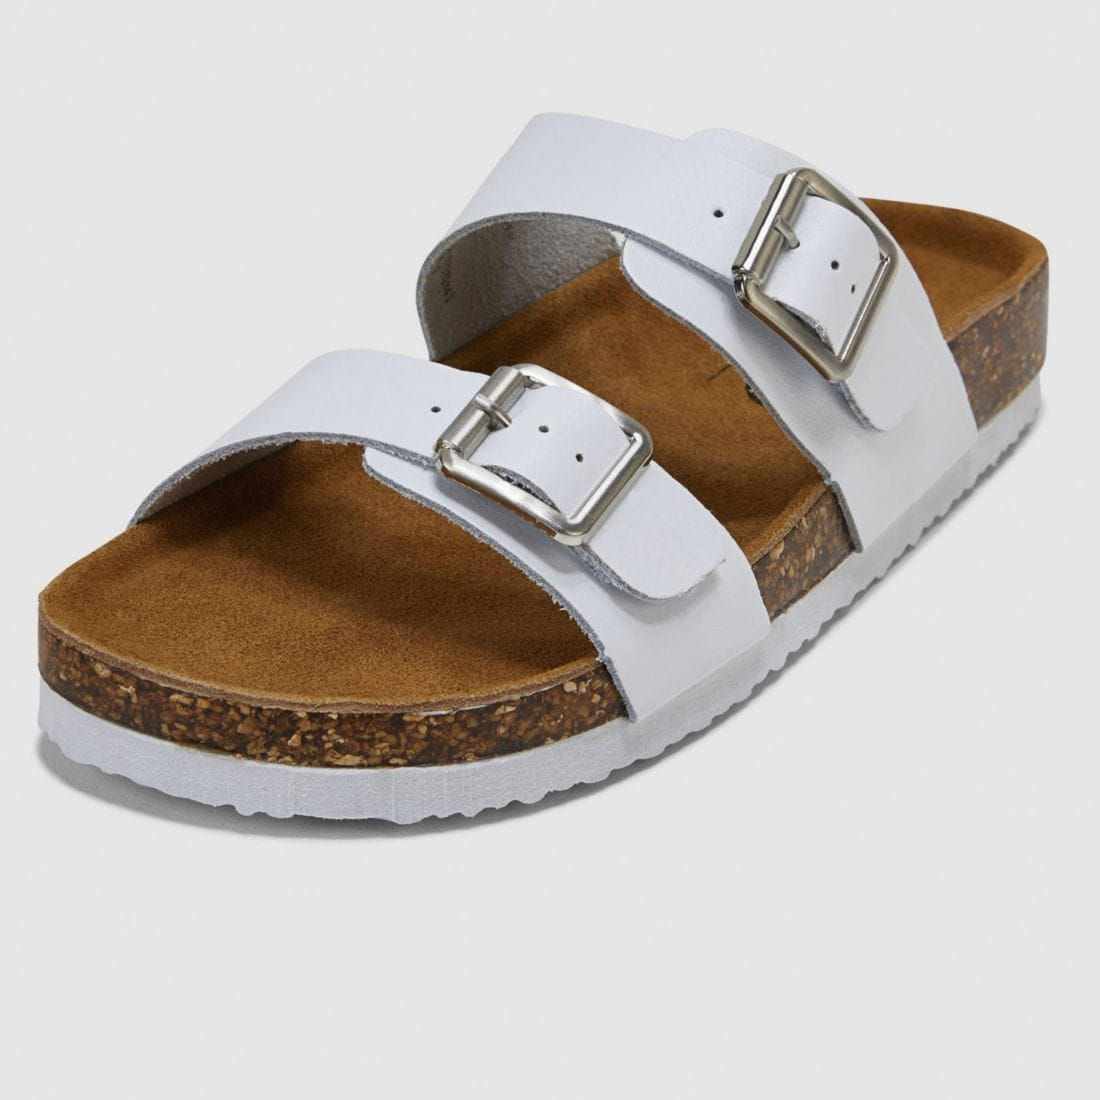 Mossimo Kelly Footbed Sandal - White